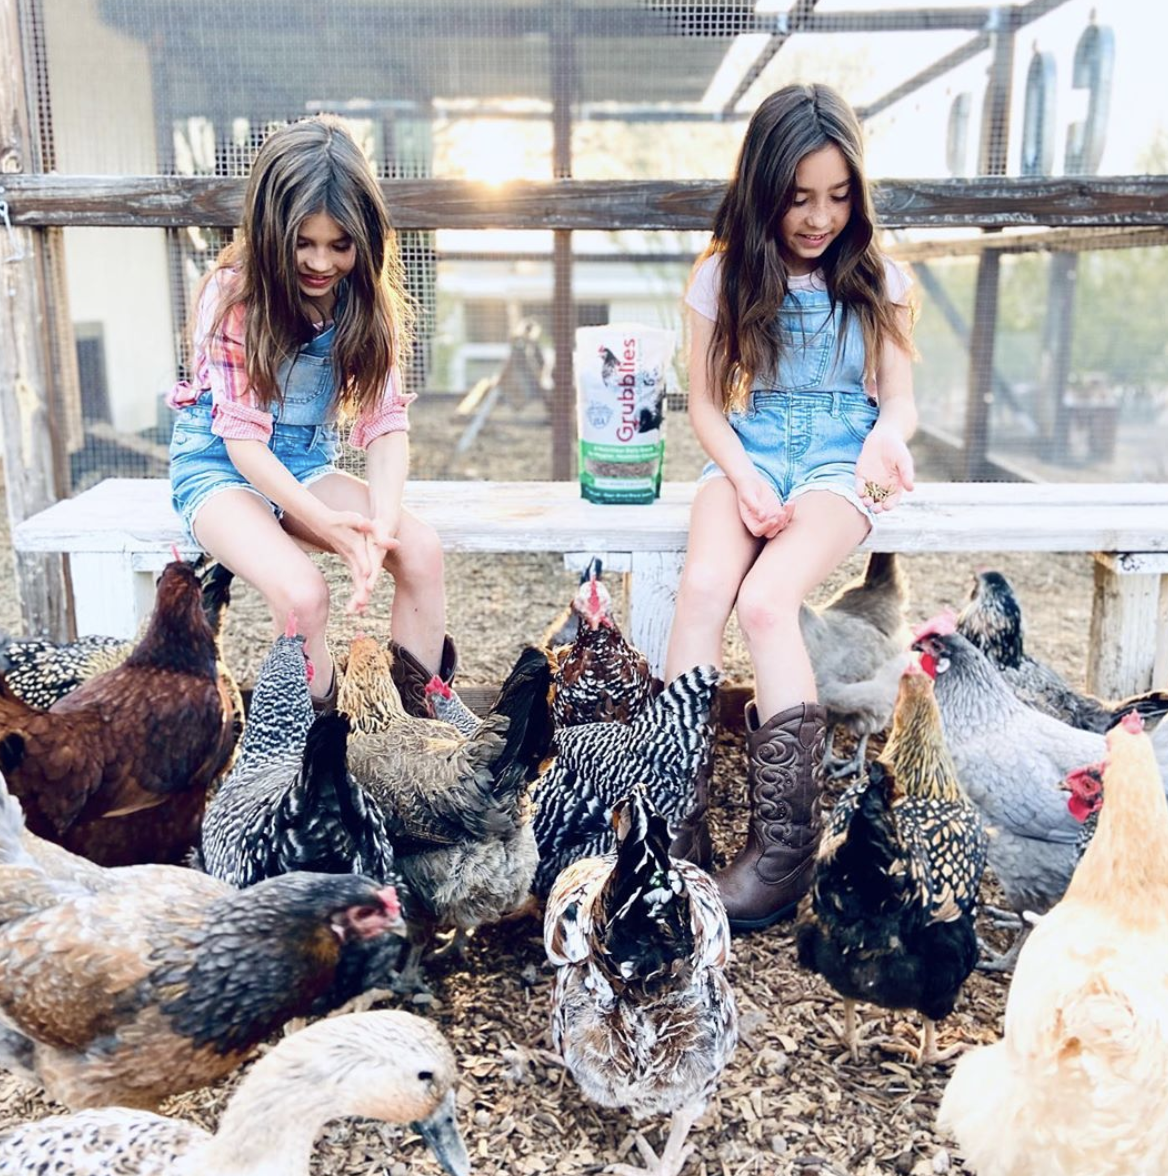 two girls feeding their chickens a grubblies snack